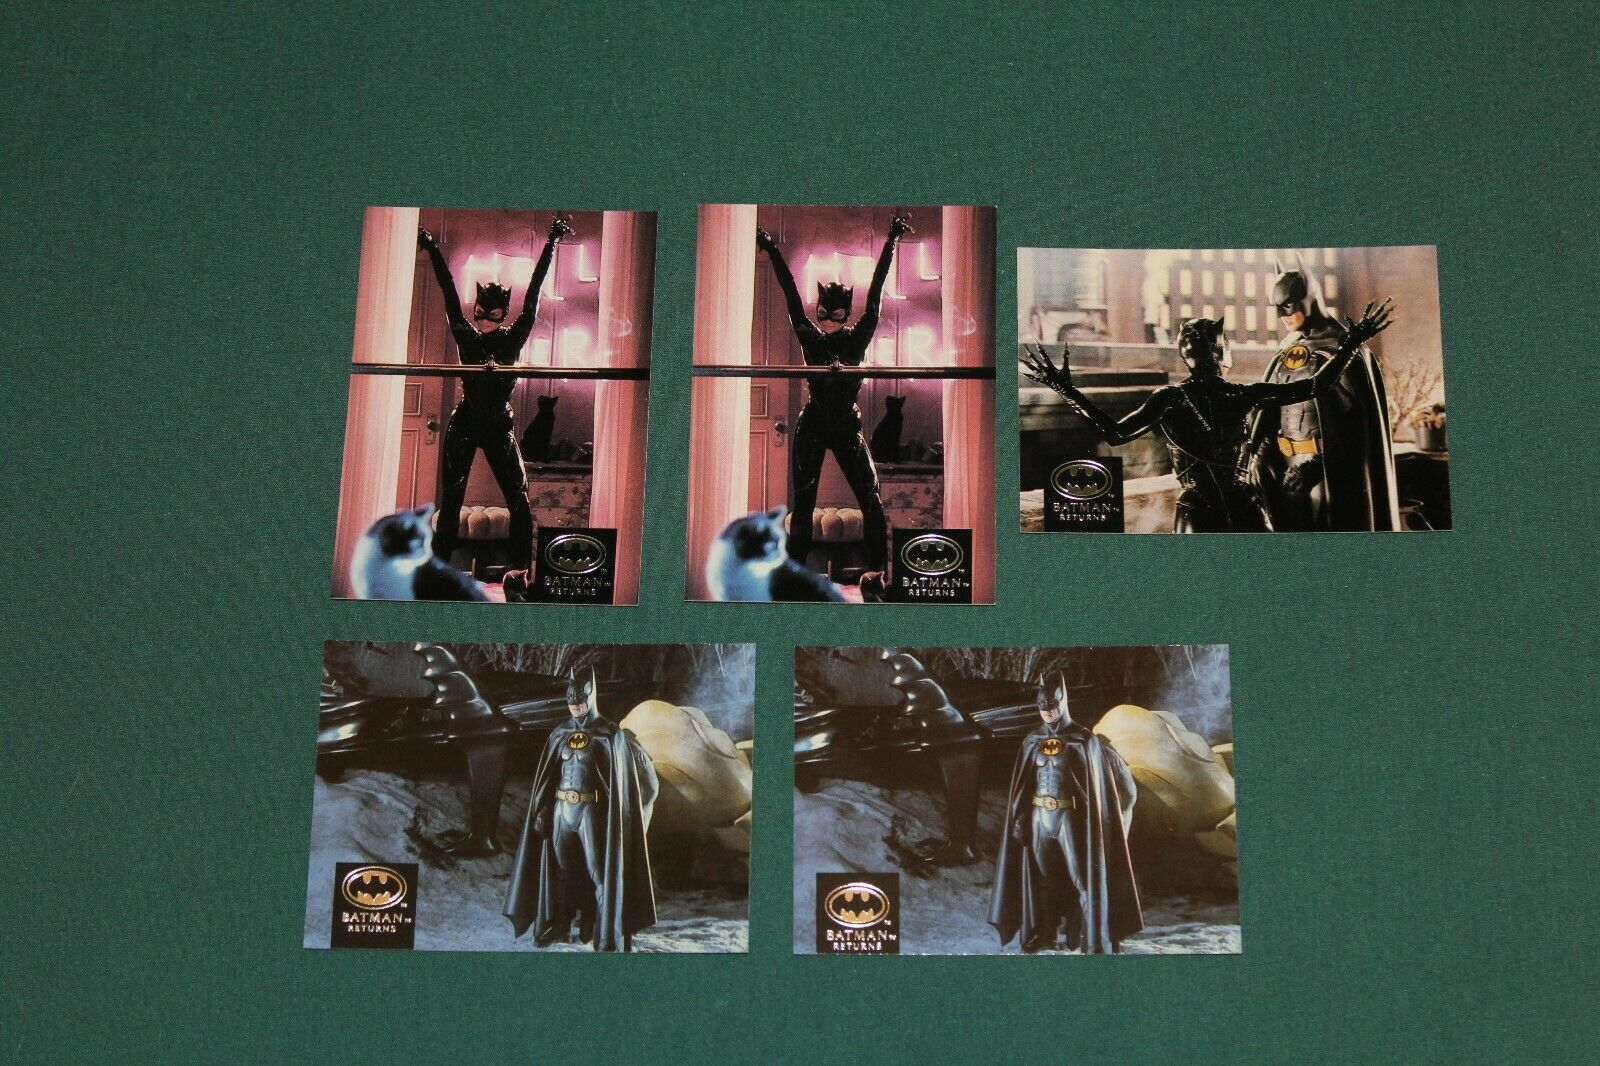 BATMAN RETURNS 1992 TOPPS STADIUM CLUB CARDS: 2,4,5,6,7,10,12,13,14,15,16,17,20 Без бренда NONE - фотография #3